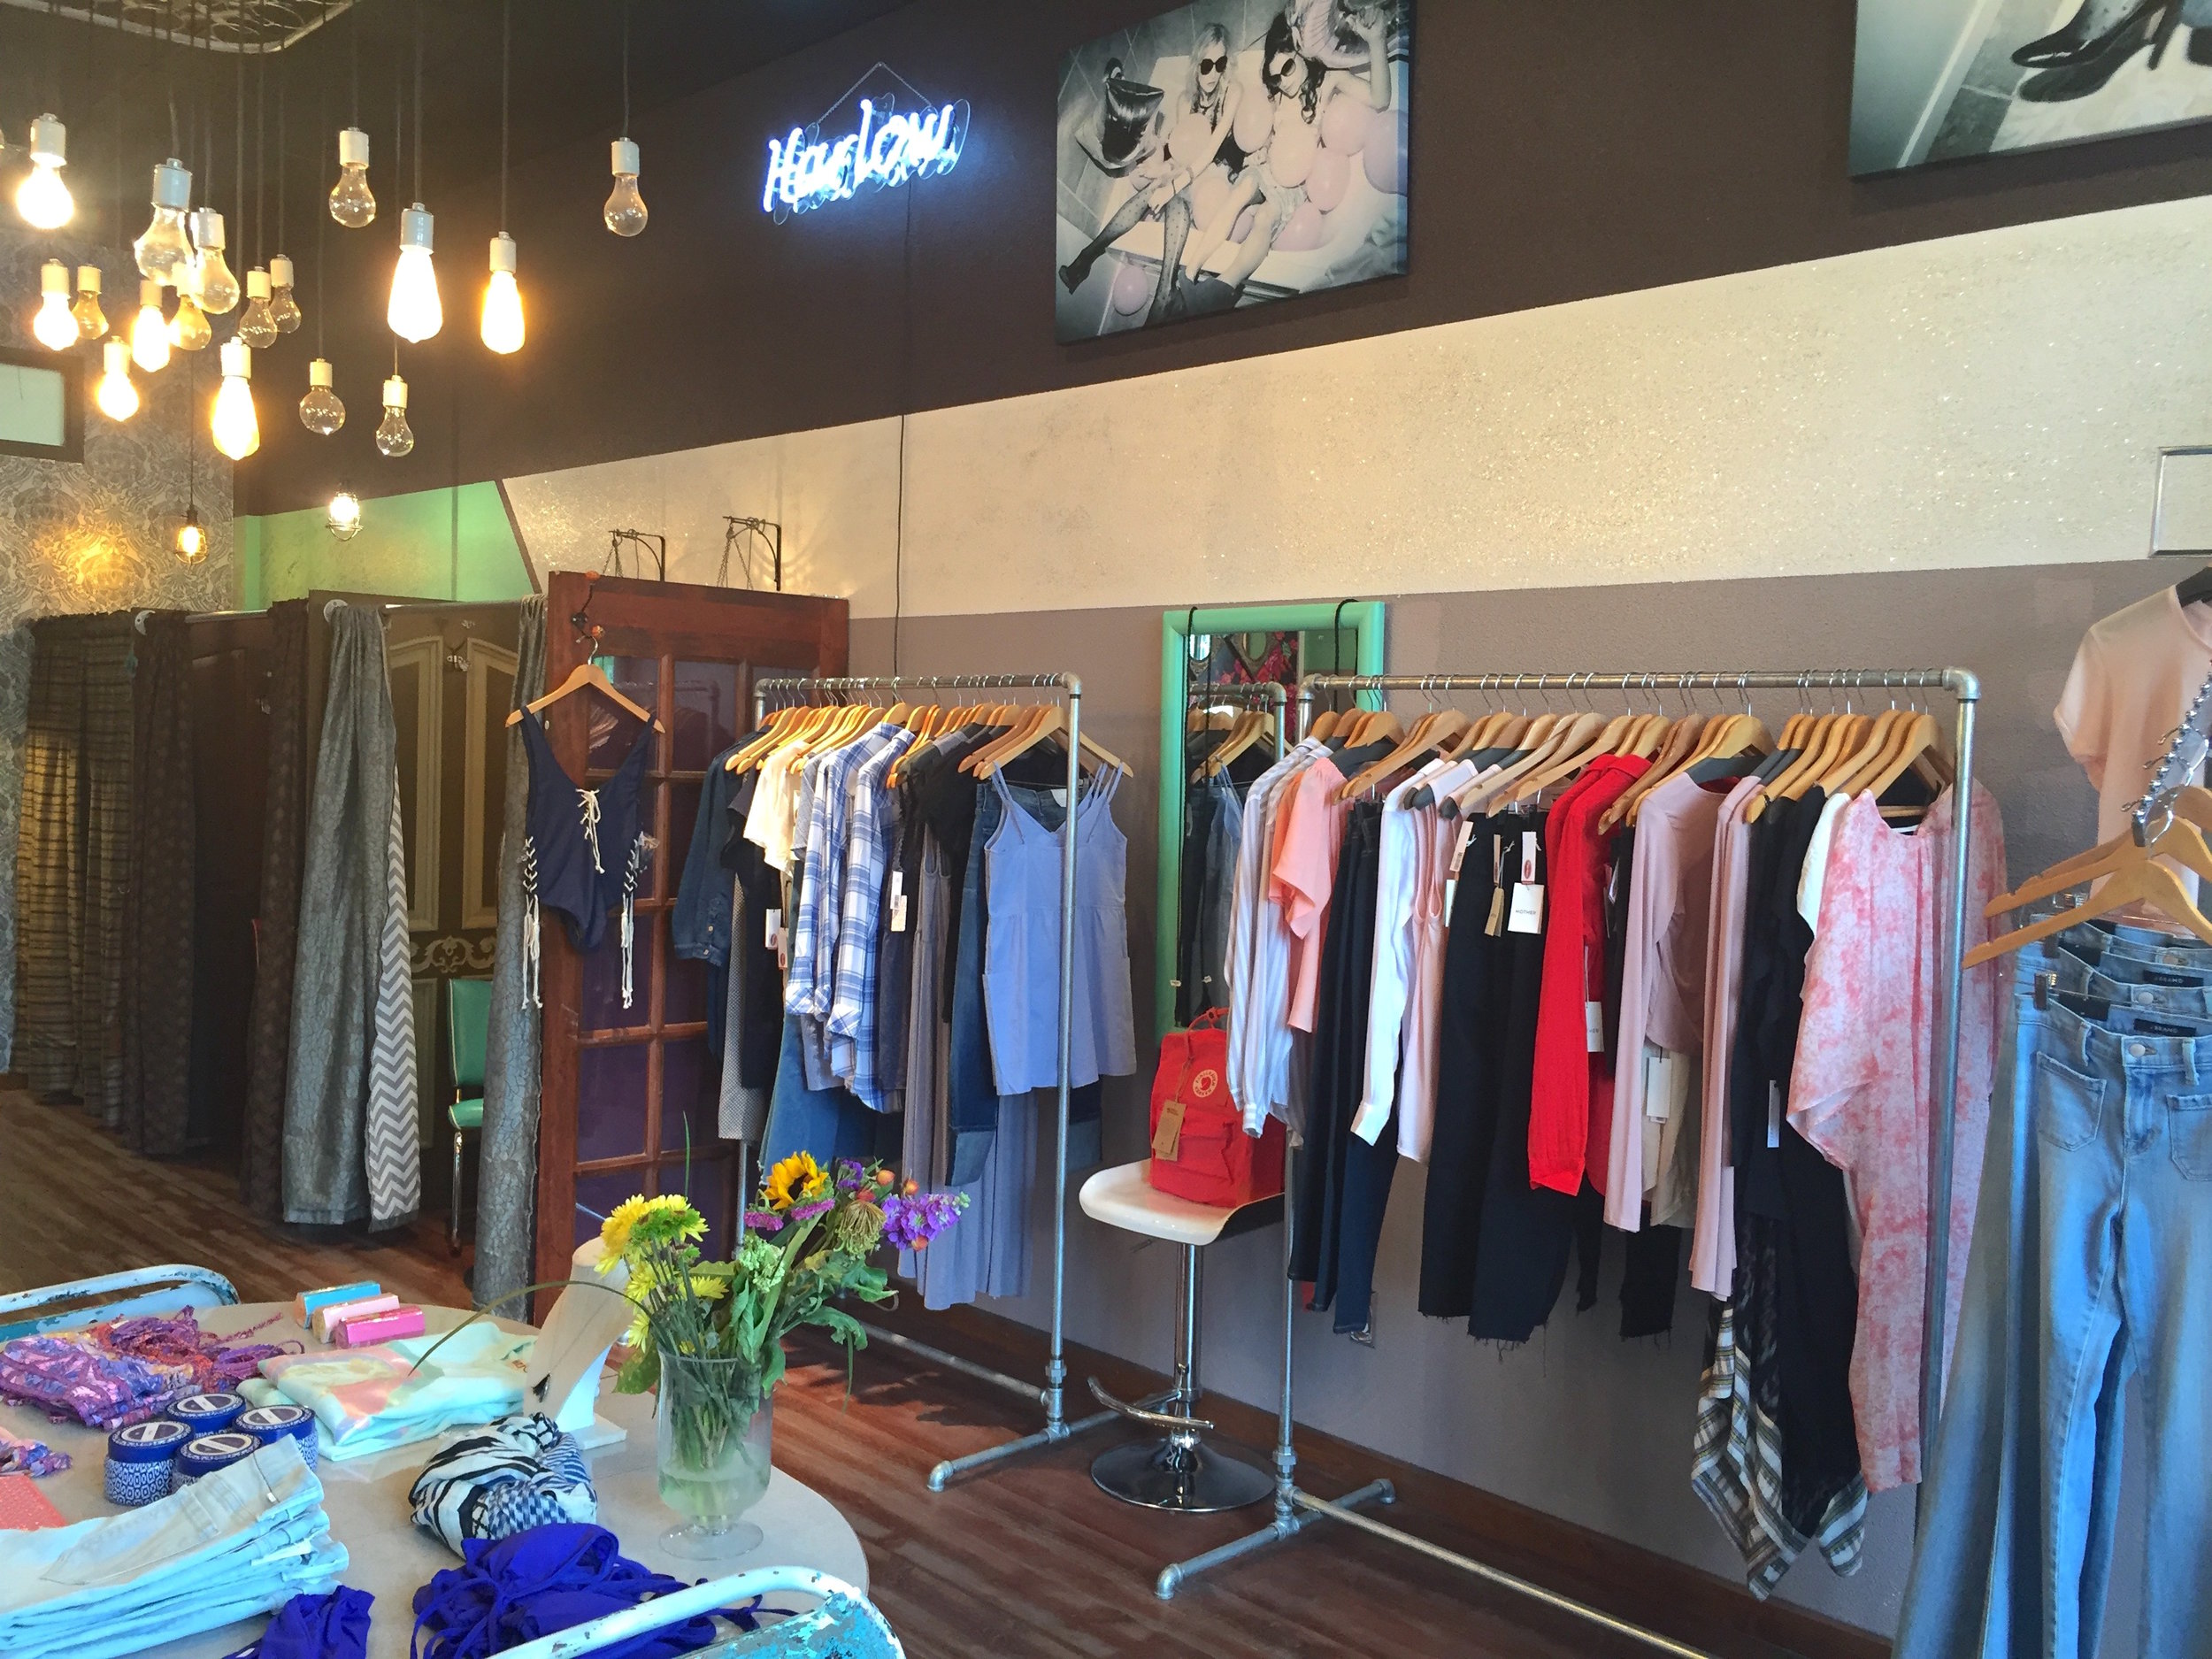 Shop ::  Harlow . If I lived in Whitefish, I'd buy my entire wardrobe here. When I visited, I became a regular stopping in to chat with staff and try on the gorgeous garments ranging from Mother Denim jeans to Free People dresses to Cleobella bags.